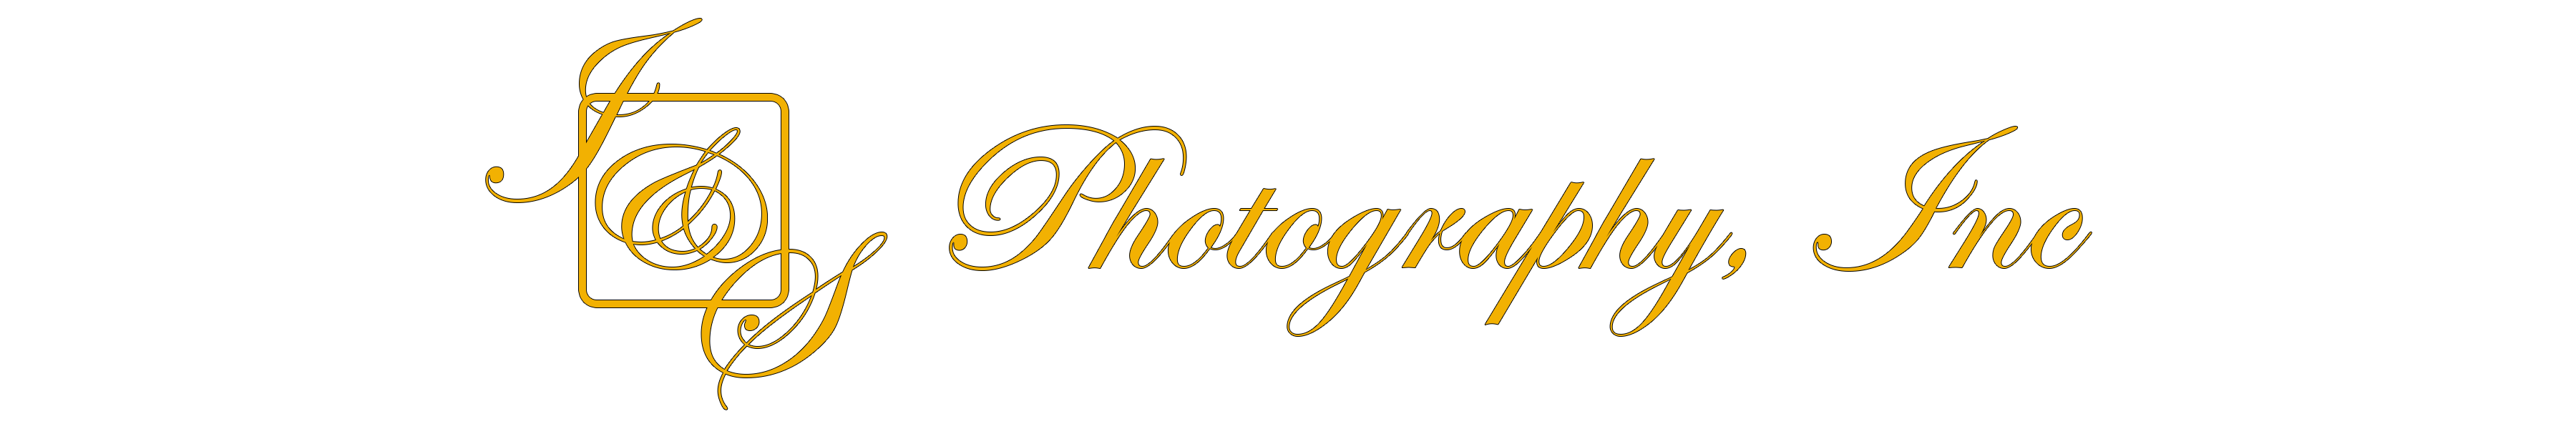 J and S Photography, Inc.